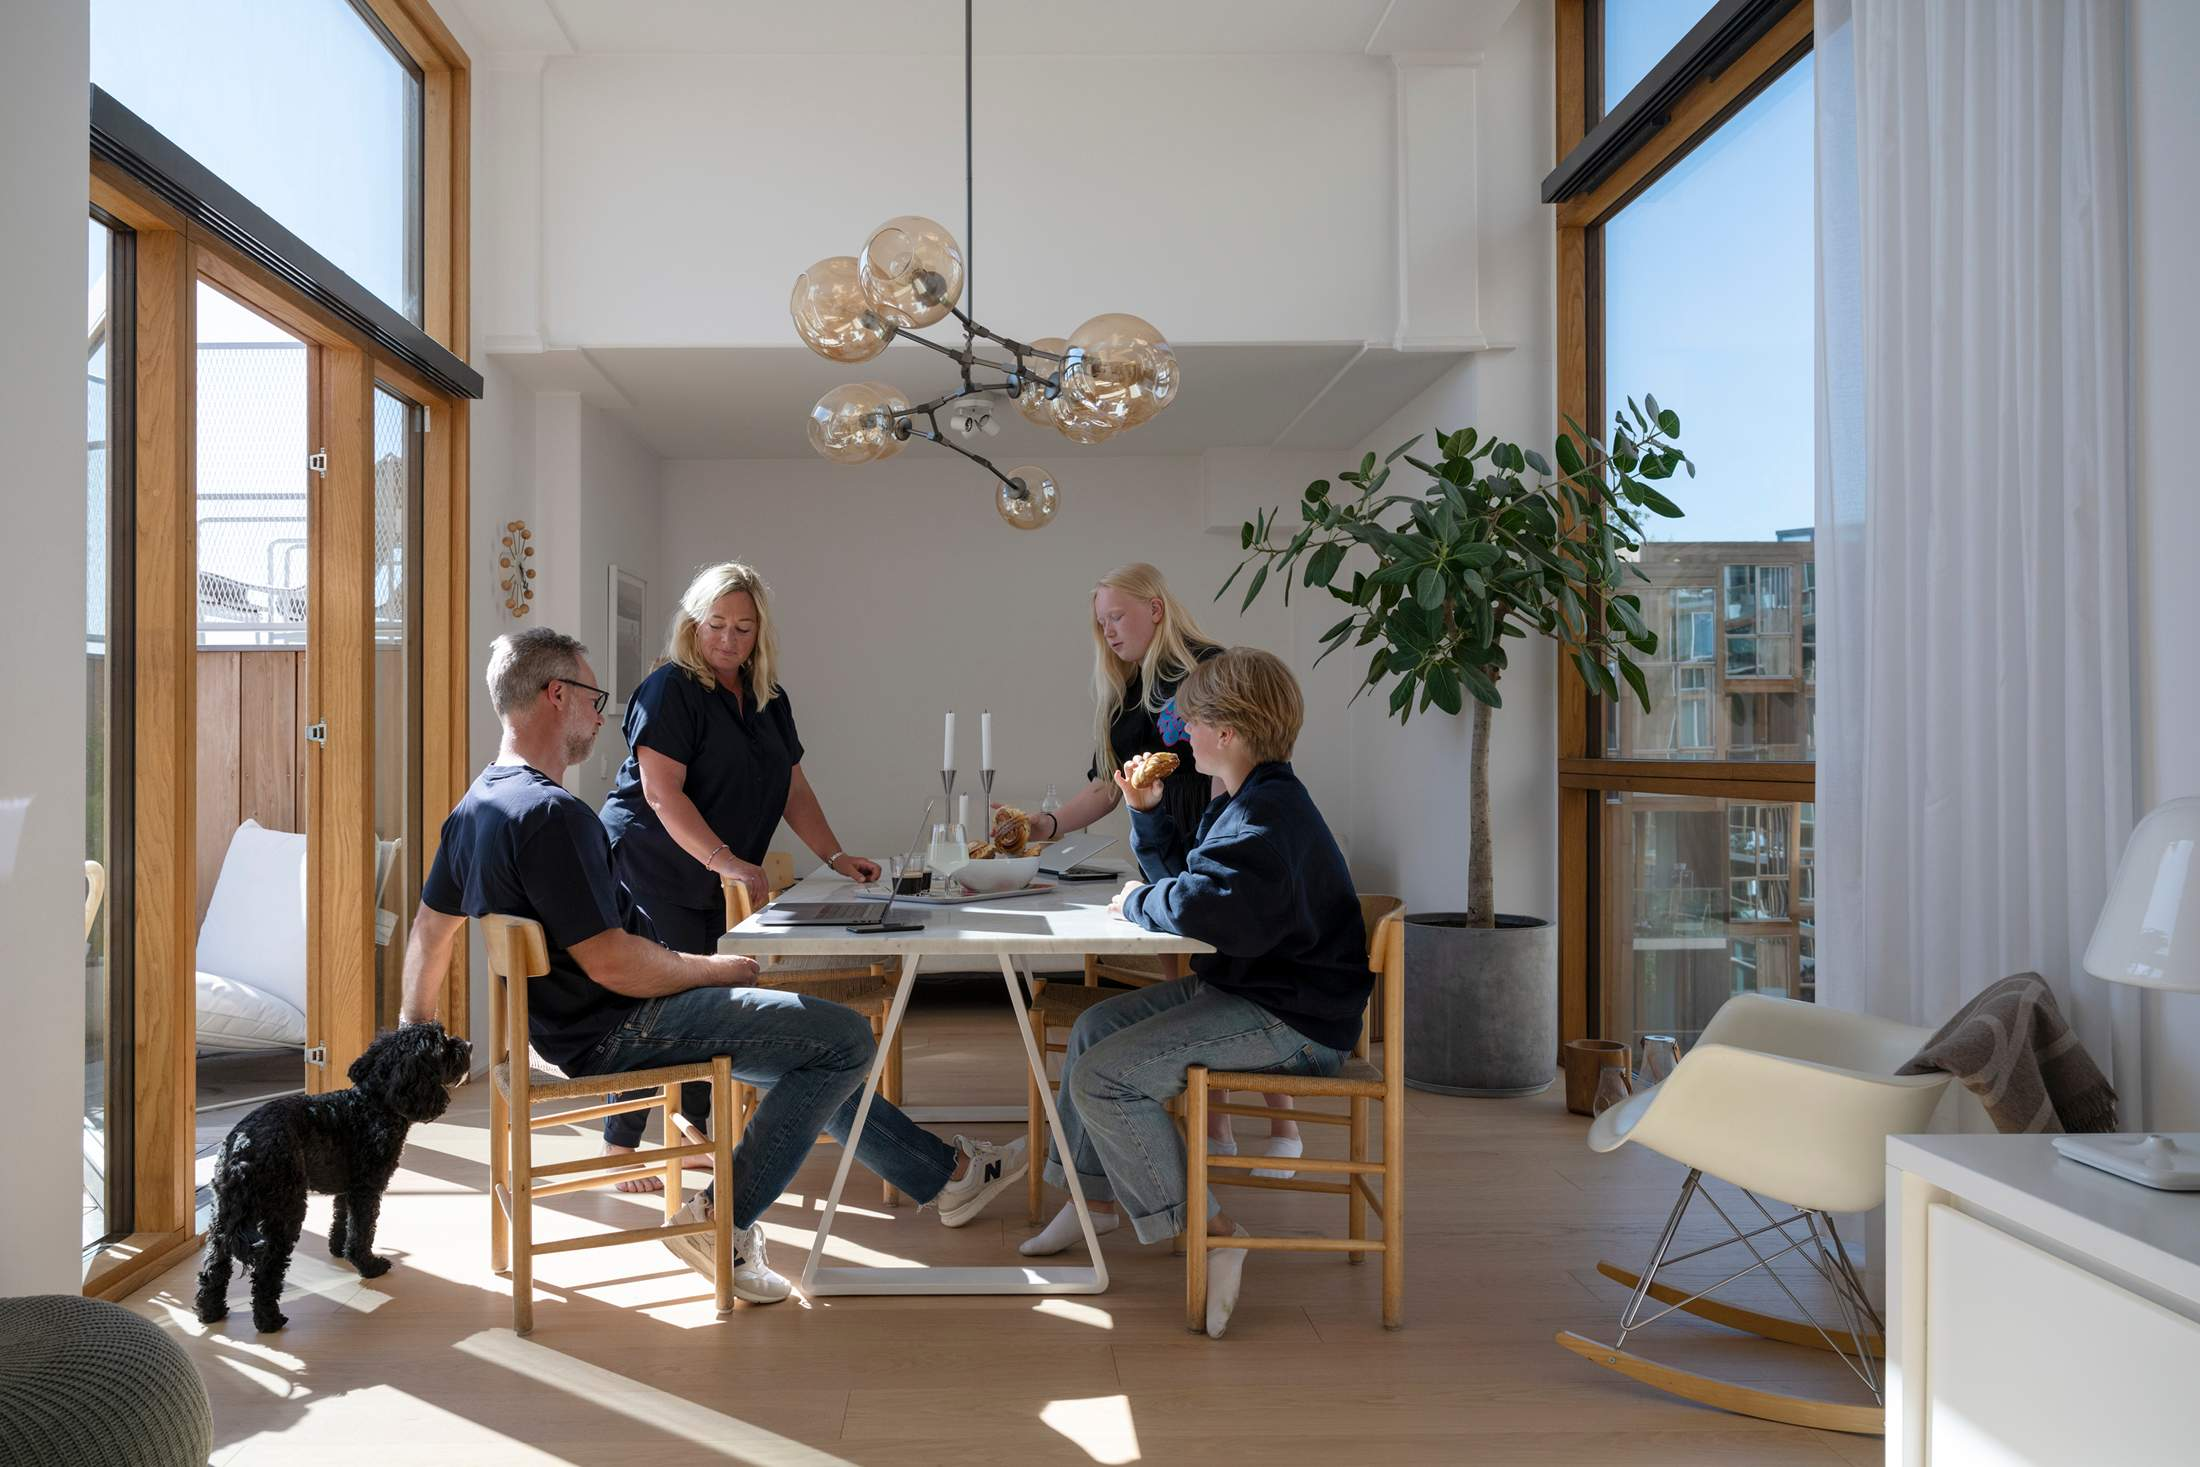 karl-johanbogenfors+family-in-apartment_2157.jpg